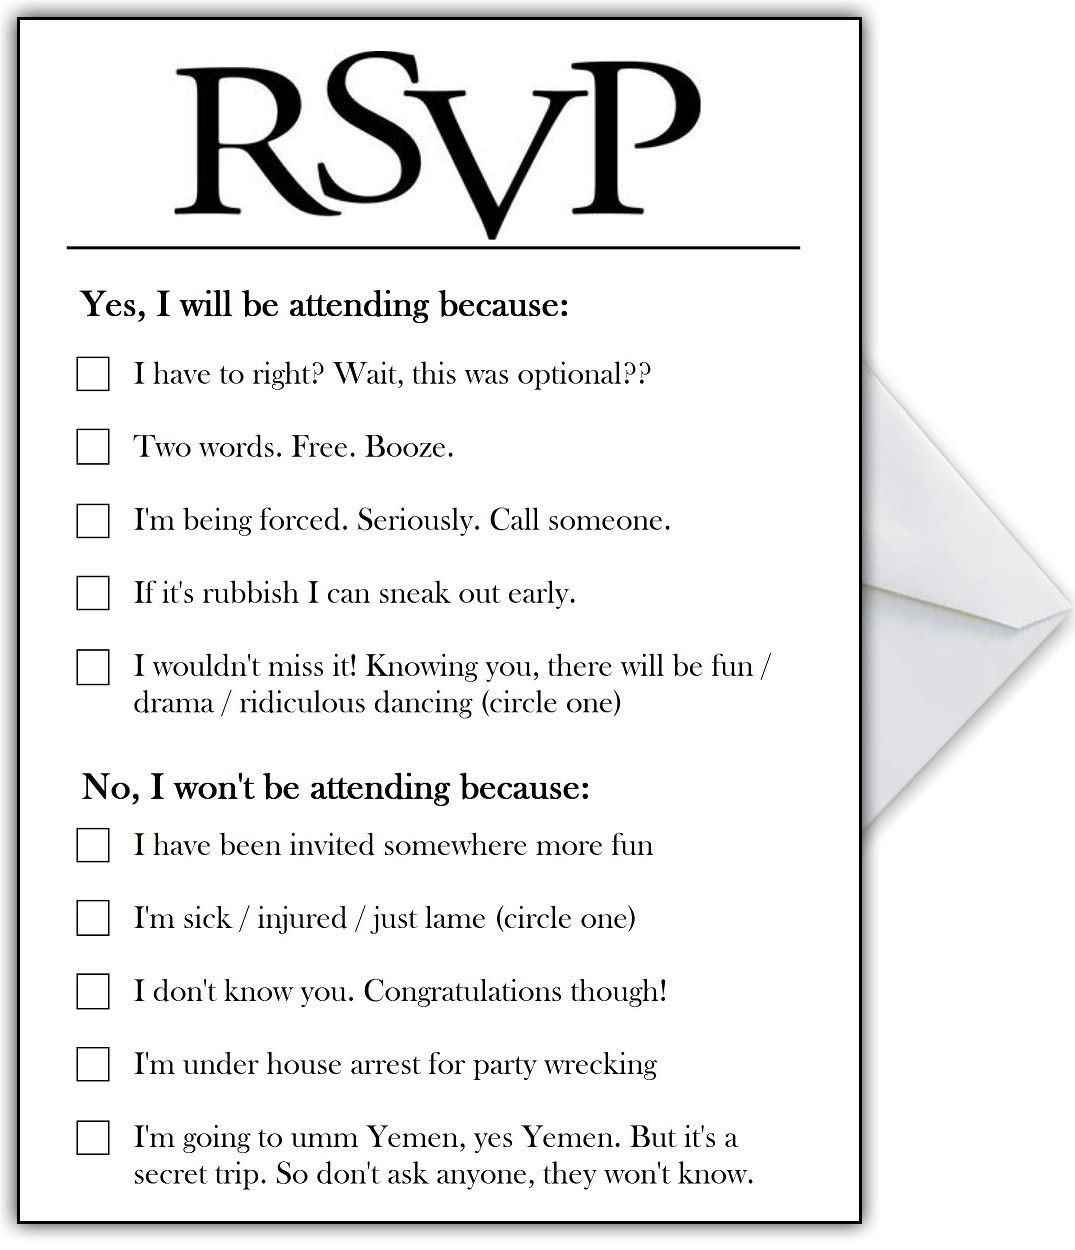 Wedding Reception Invitation Wording Funny: RSVP Card With Hilarious Options Or Add Your Own Funny